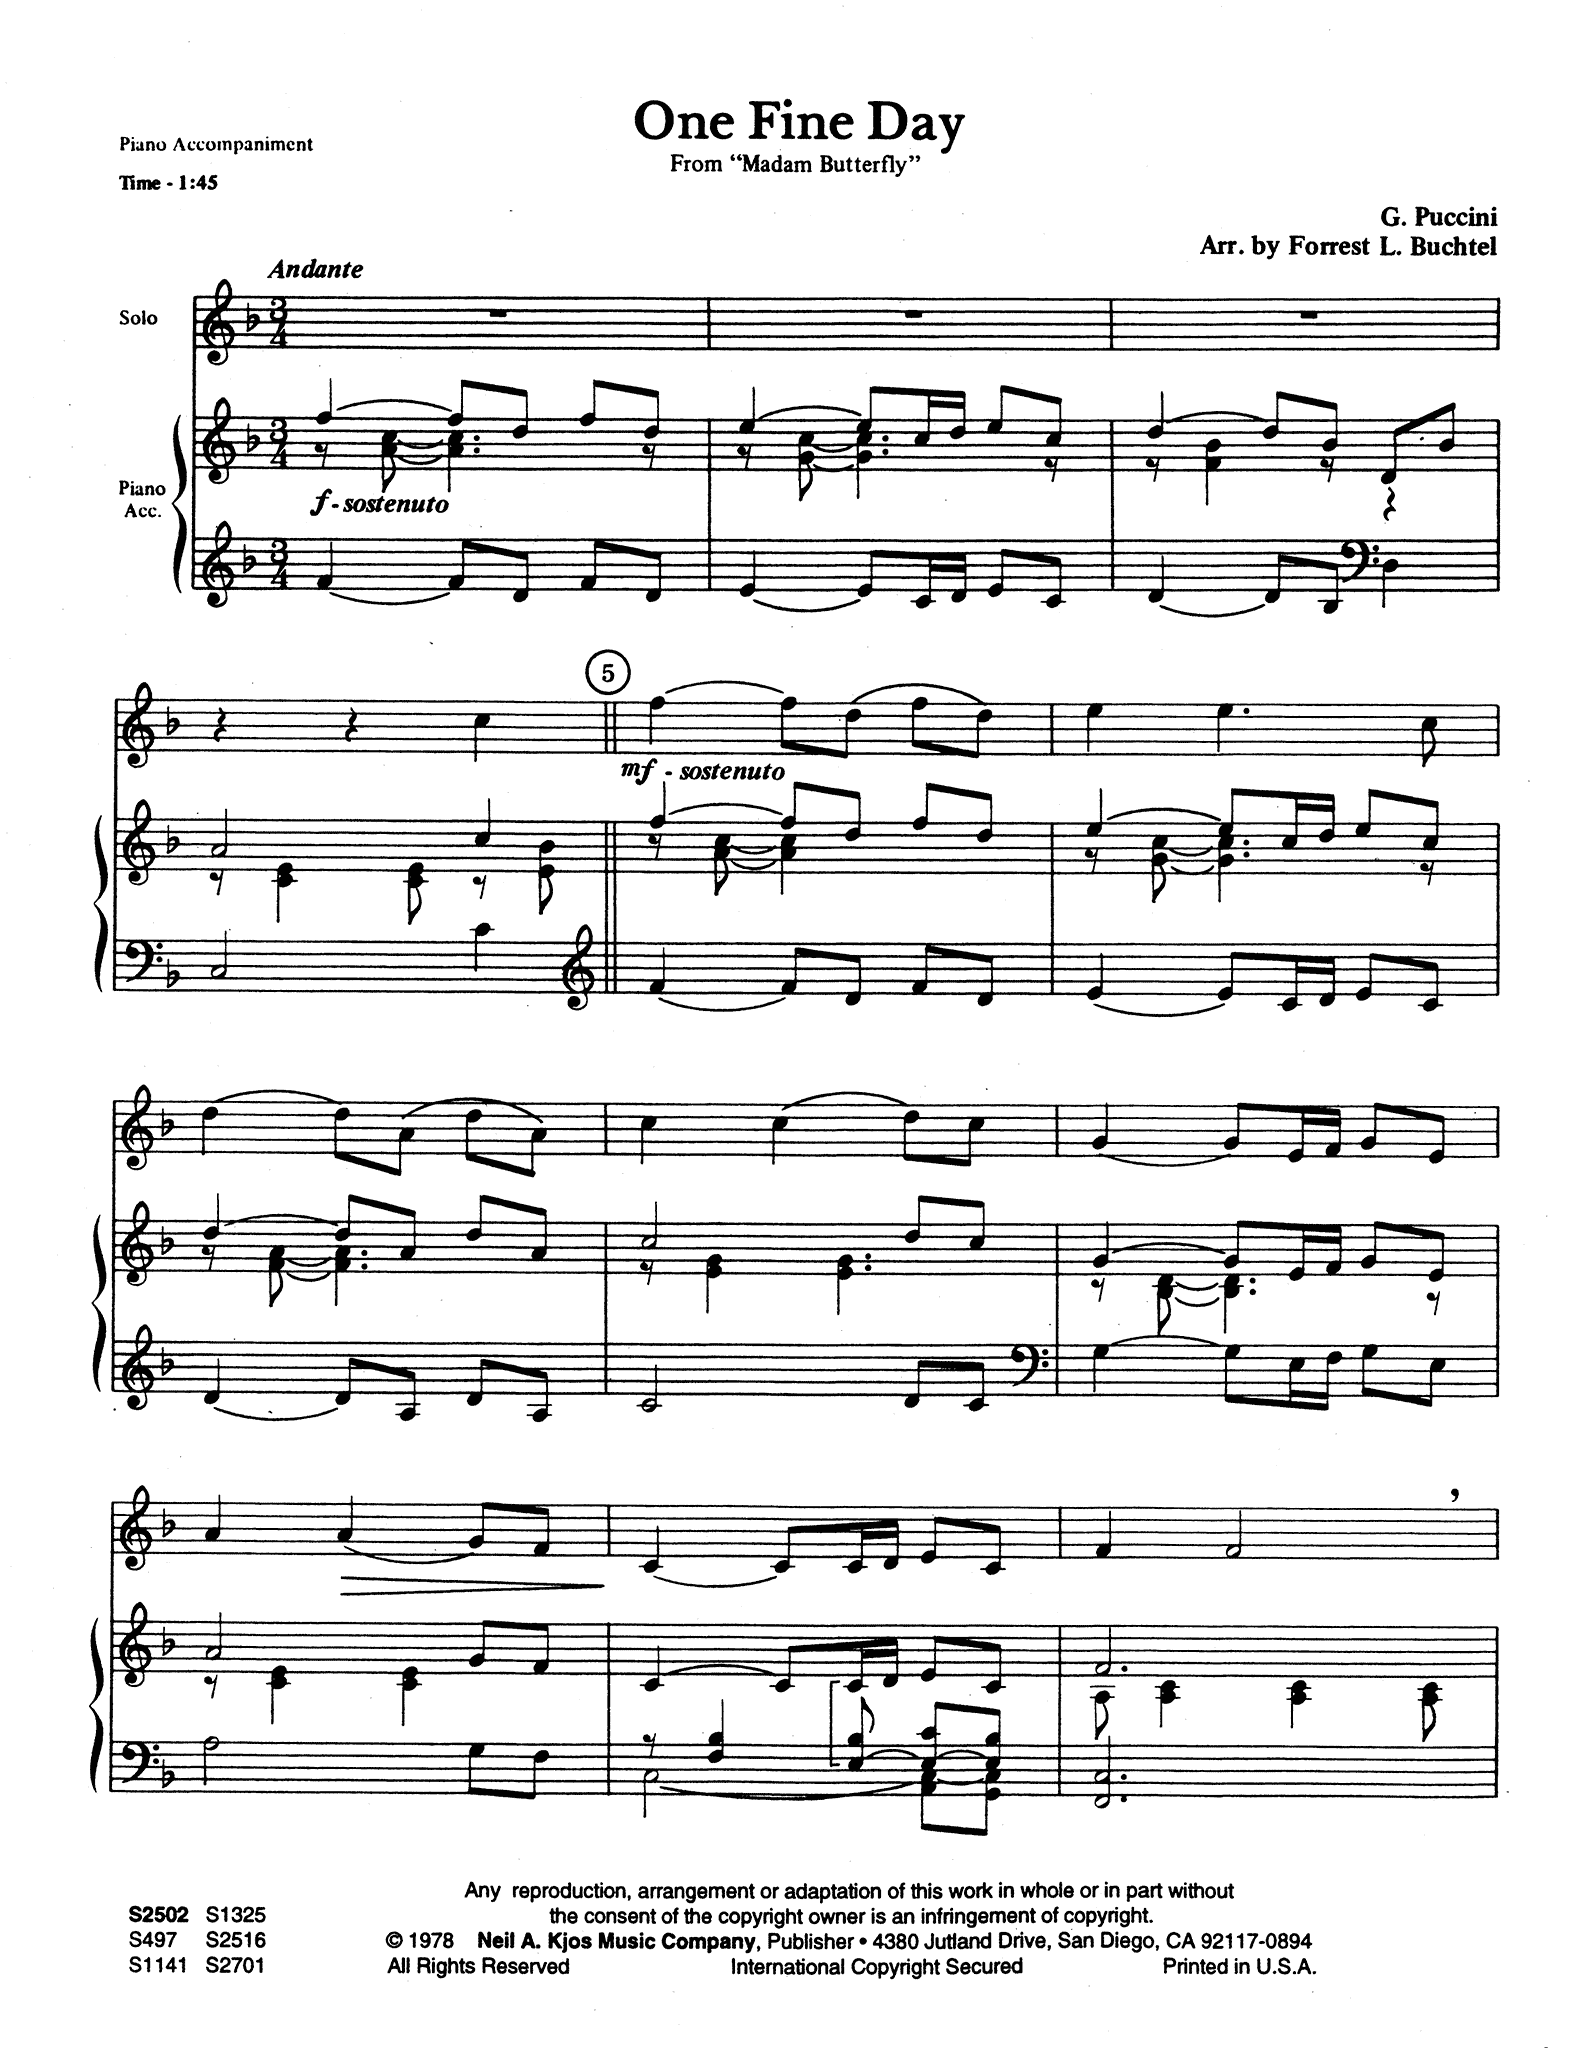 Un bel dì vedremo, from 'Madama Butterfly' Score